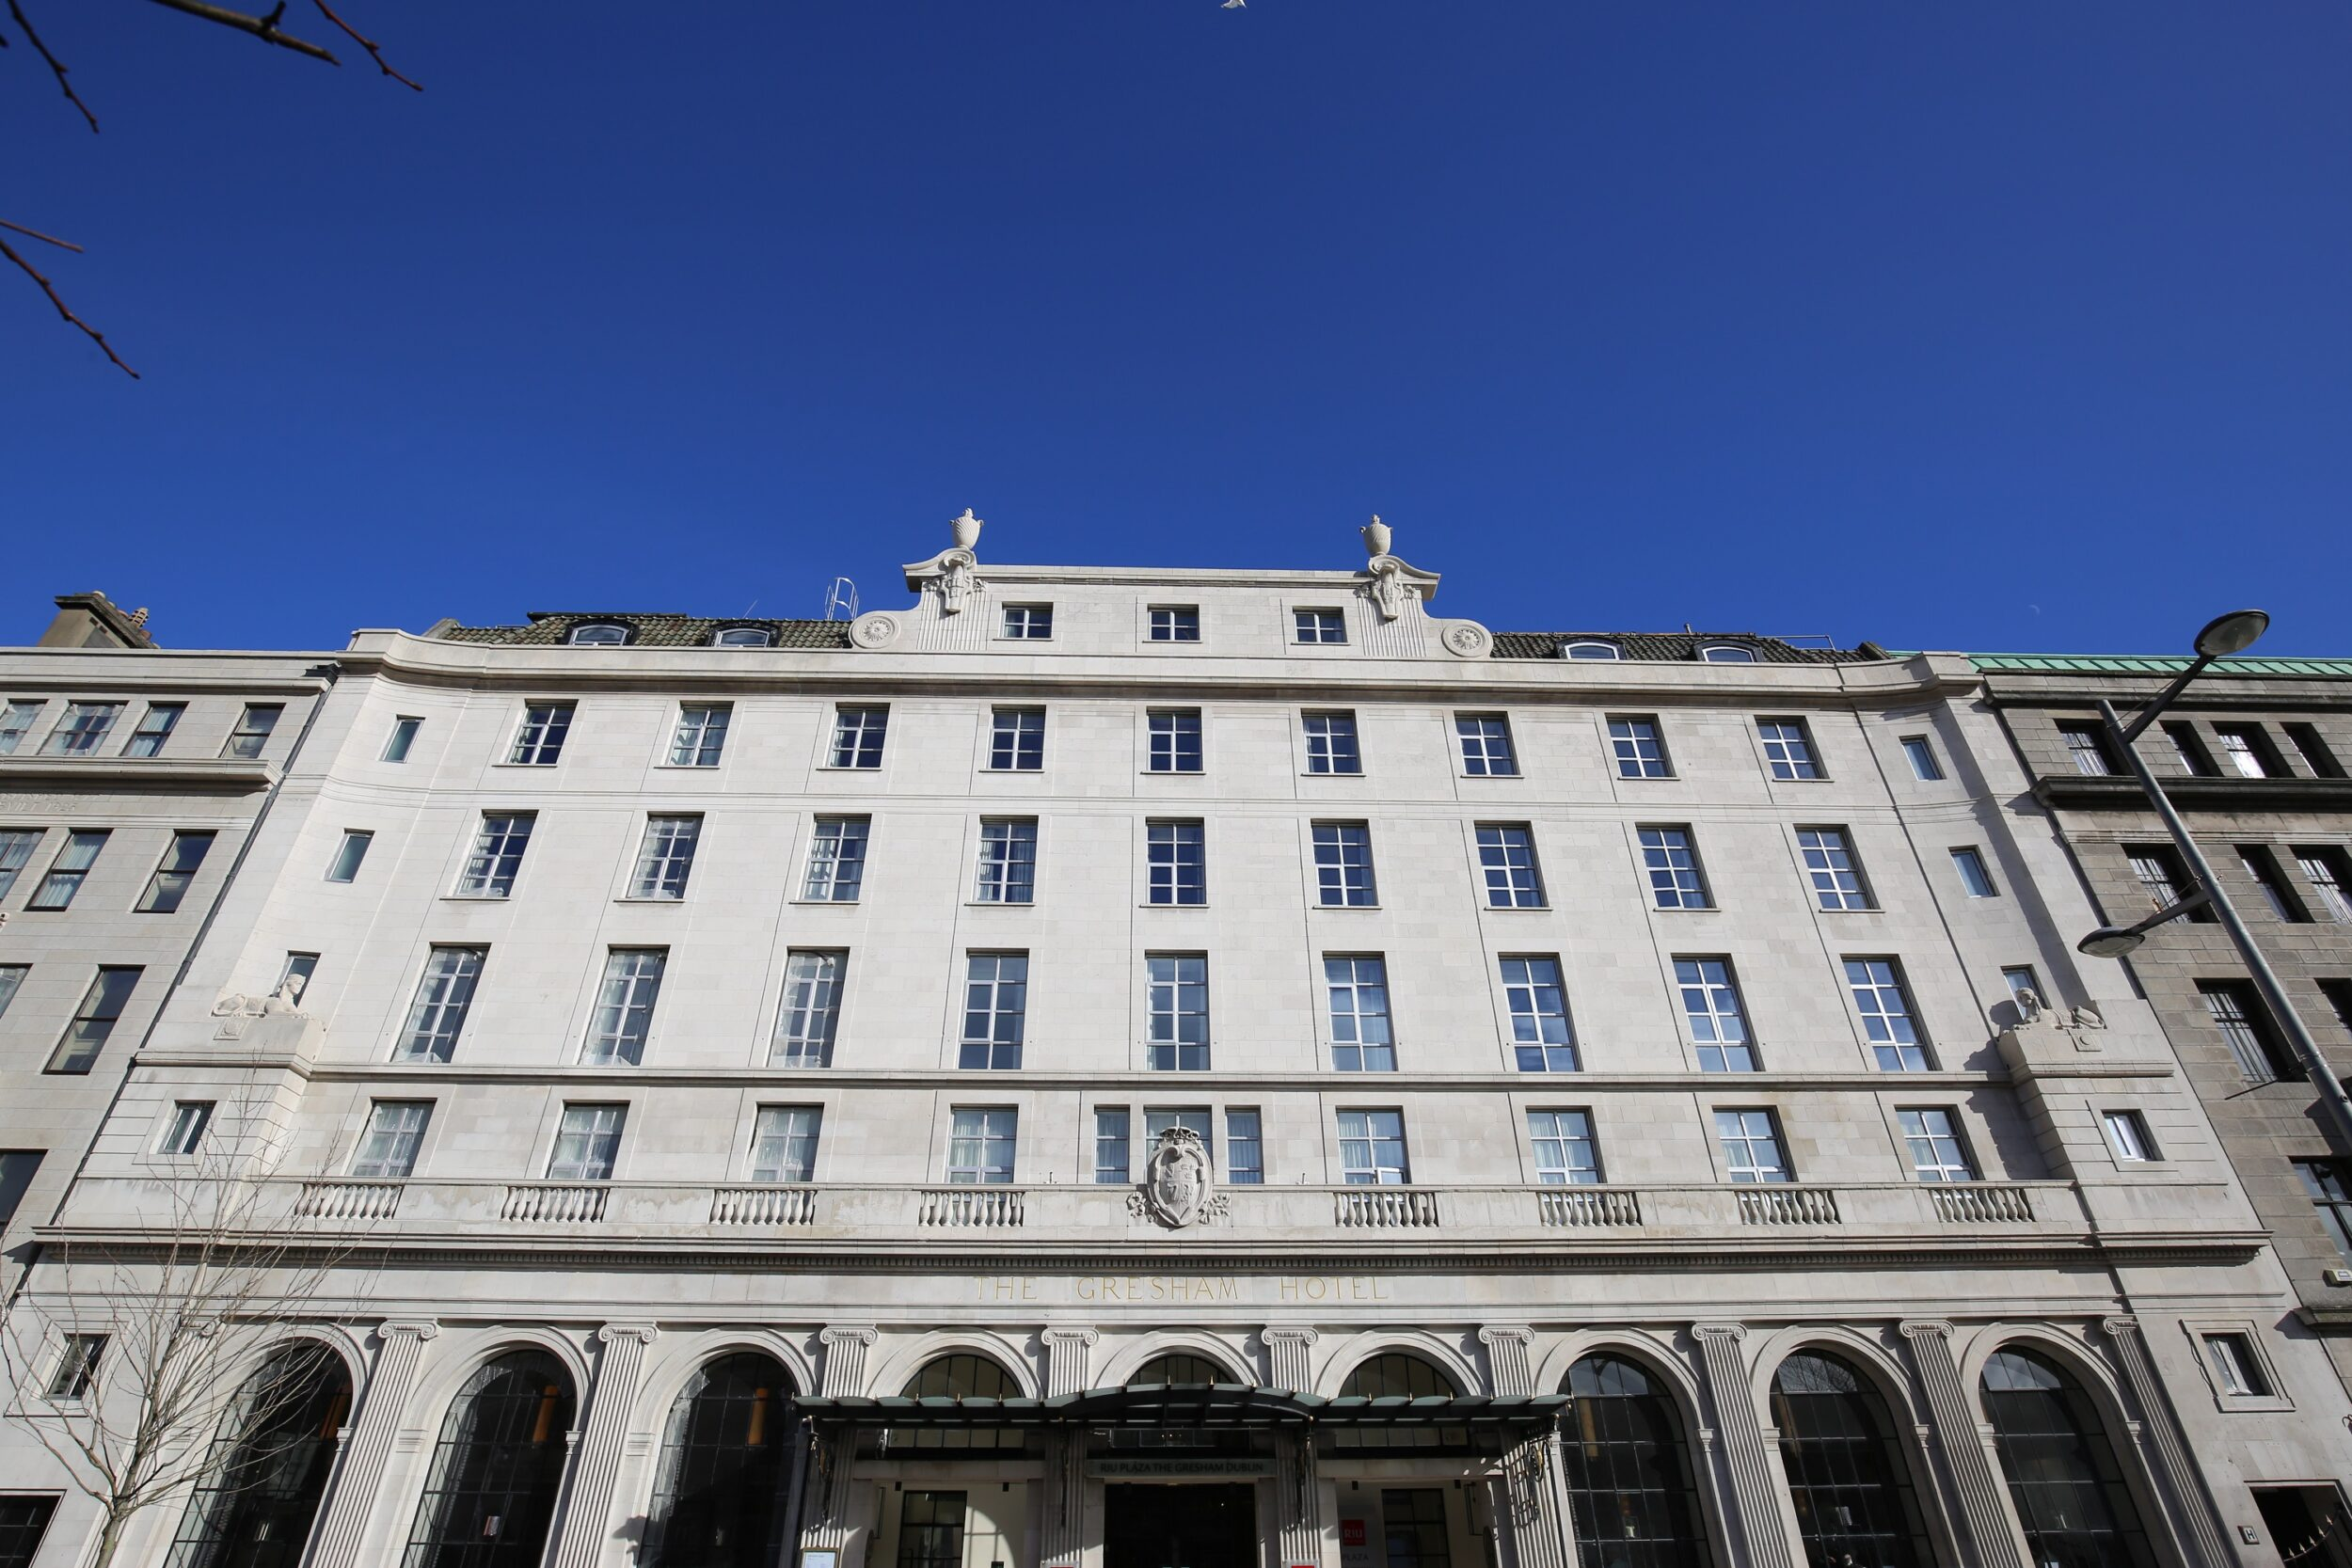 The Gresham Hotel Dublin restoration